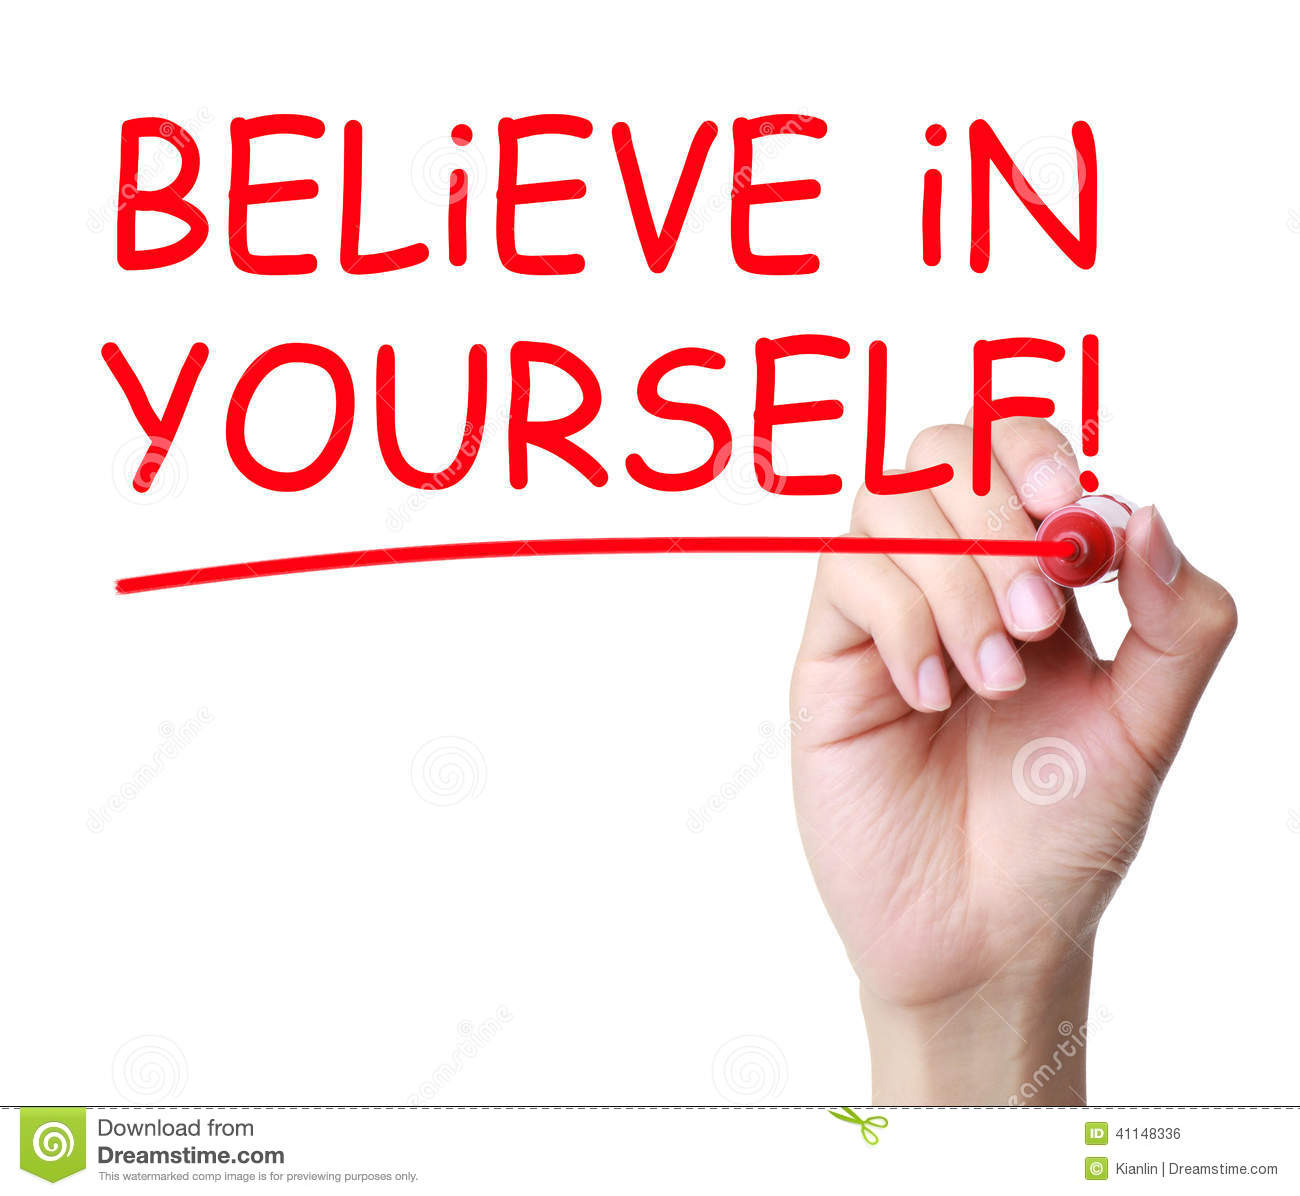 Believe in Yourself Clip Art Free